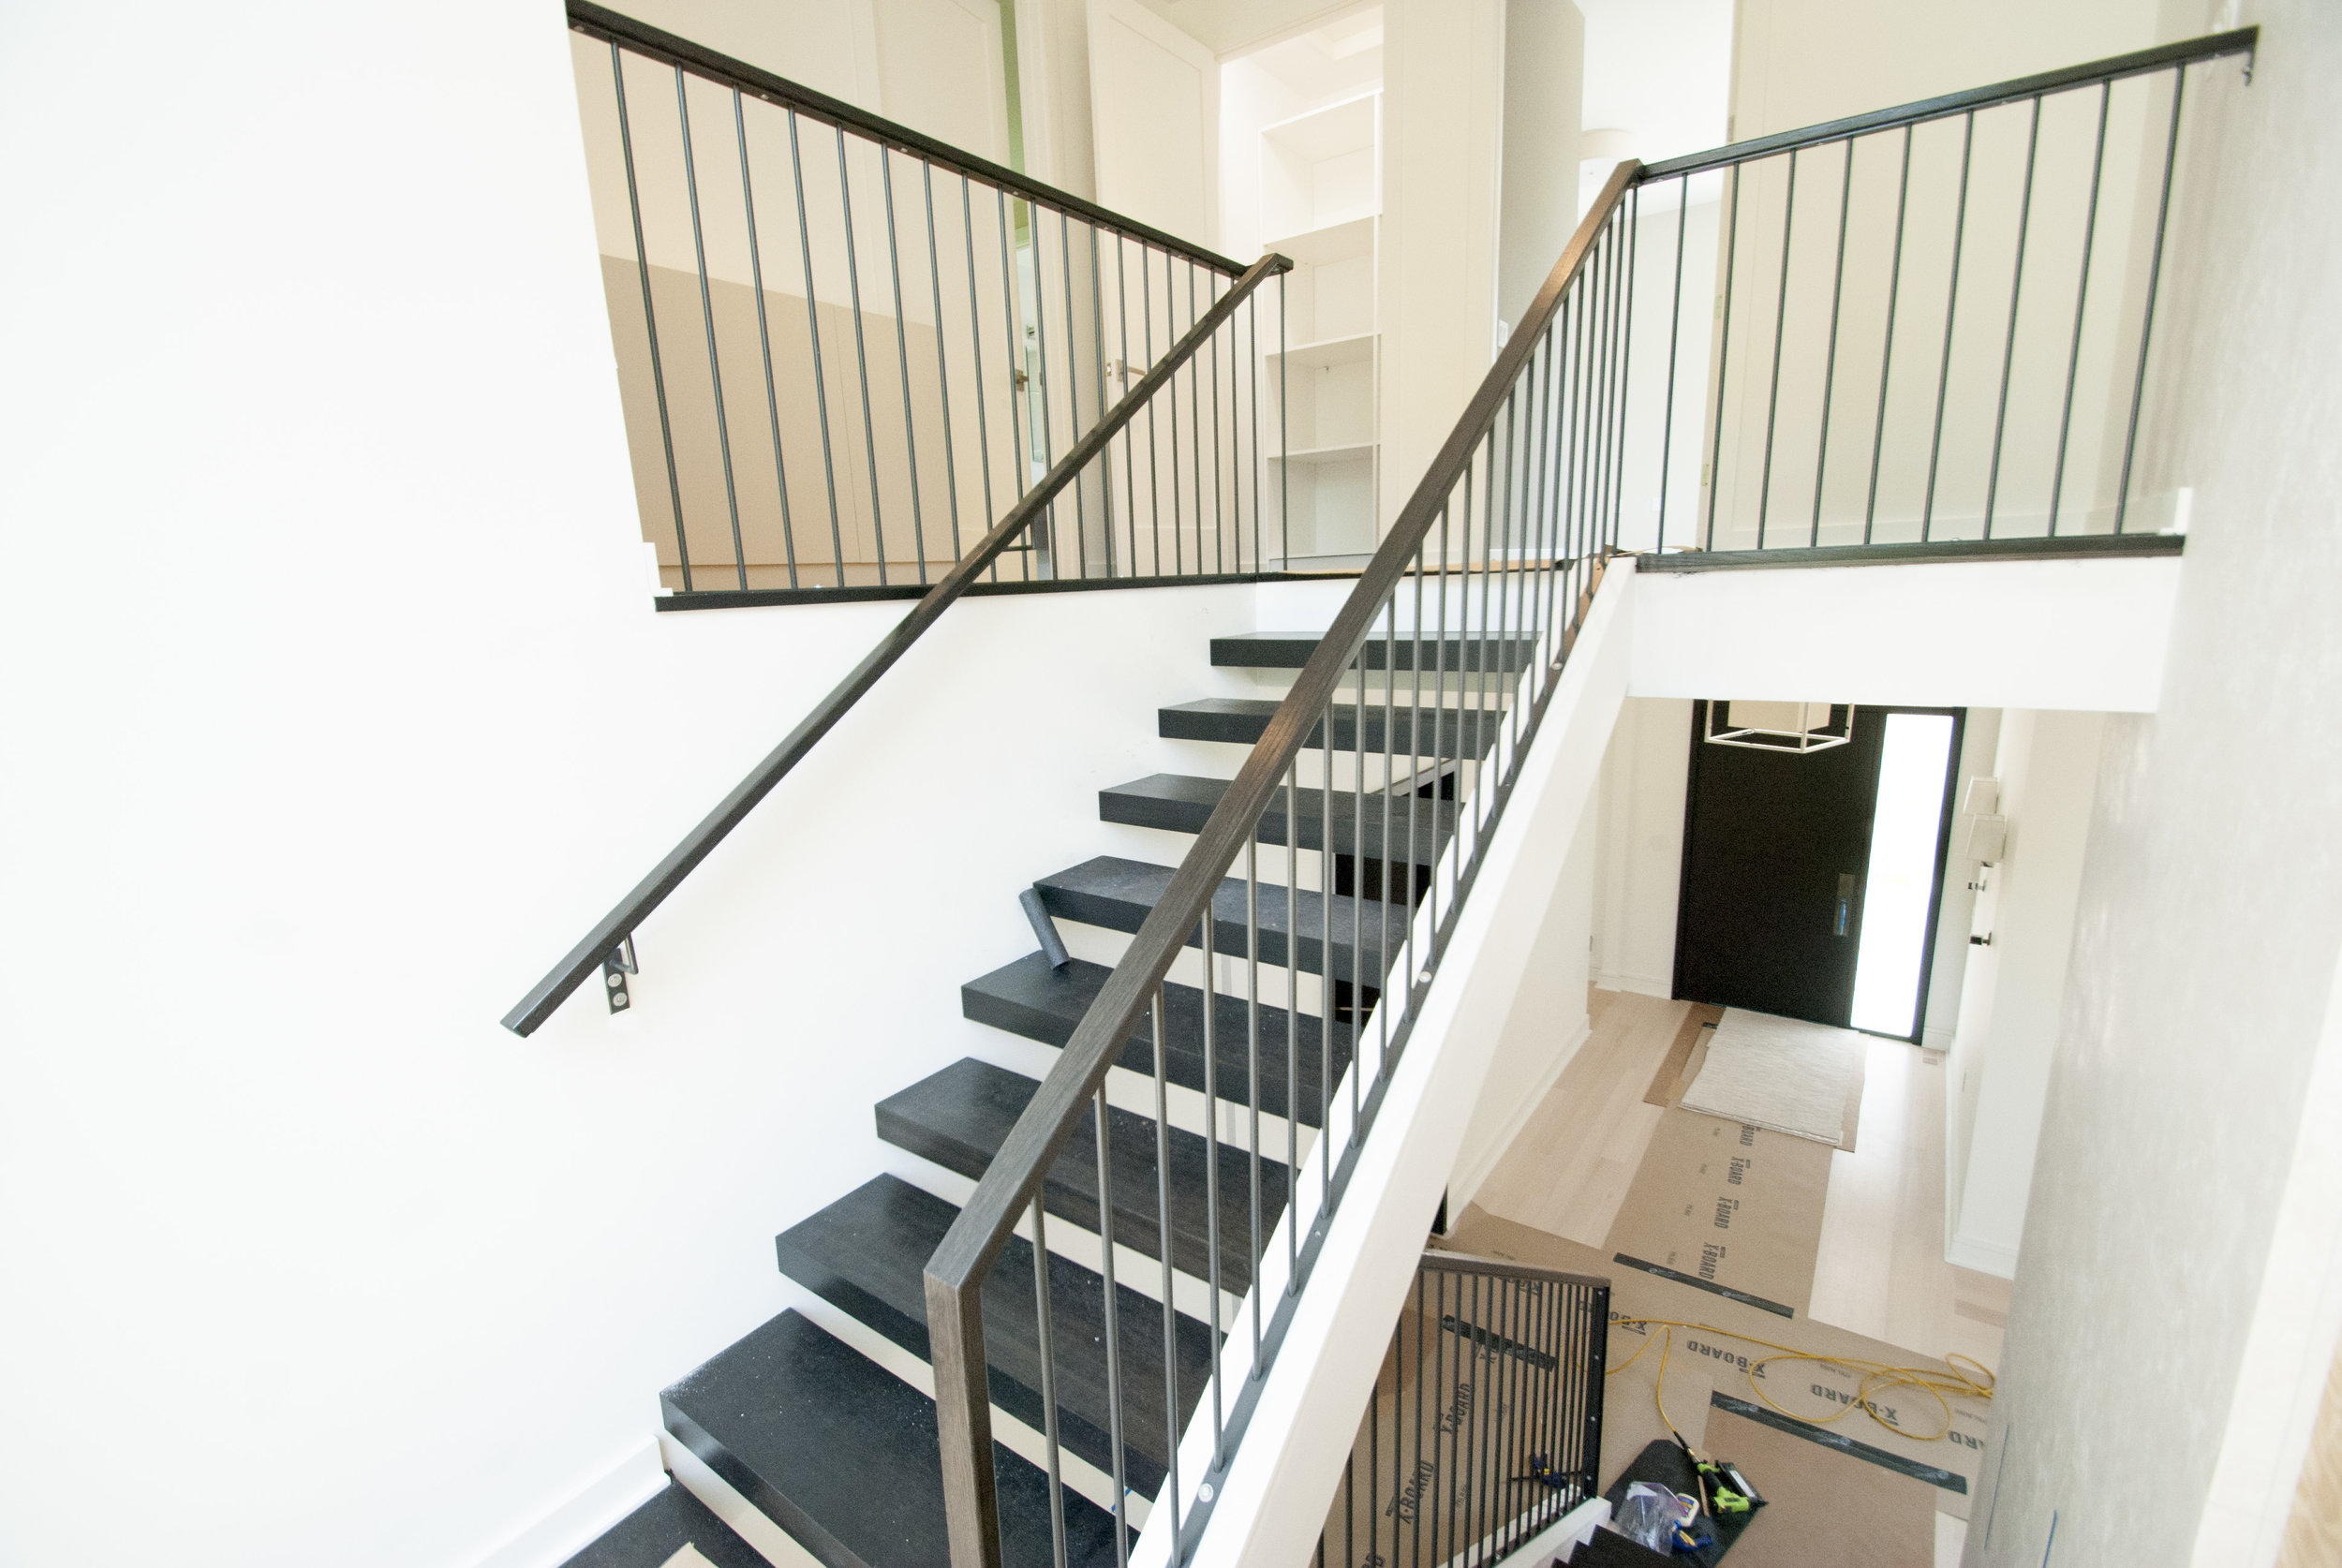 Modern stairs connect the upper and lower levels